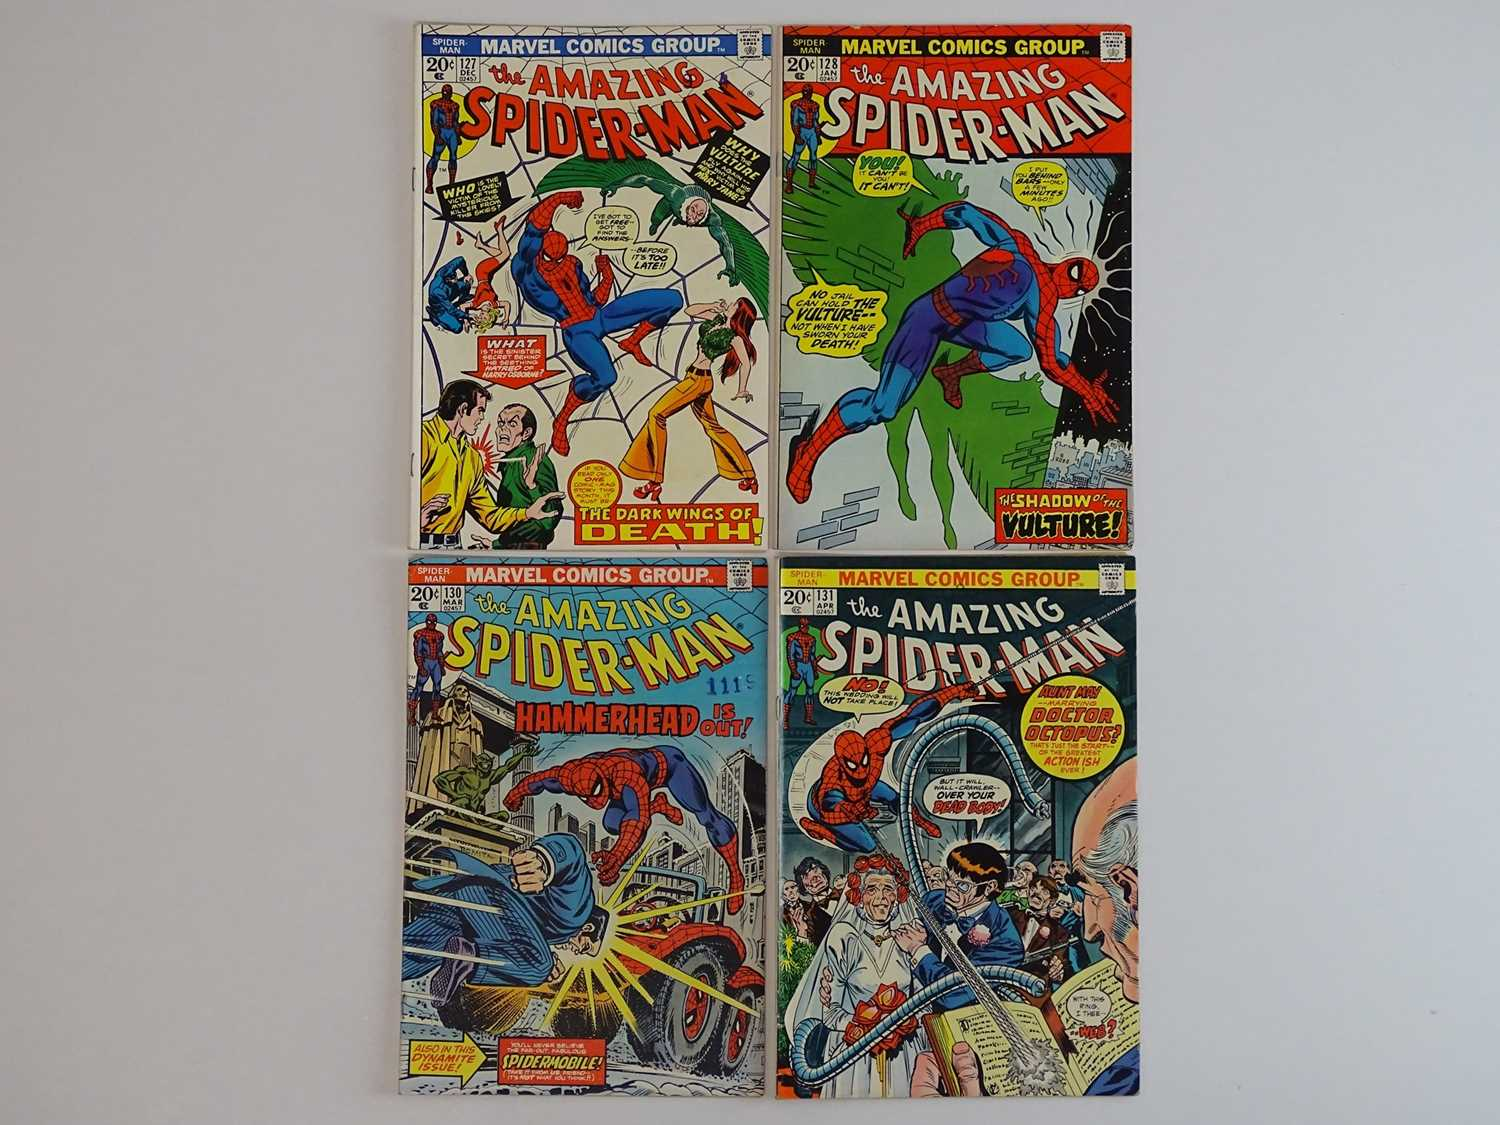 AMAZING SPIDER-MAN #127, 128, 130, 131 - (4 in Lot) - (1973/74 - MARVEL) - Includes First appearance